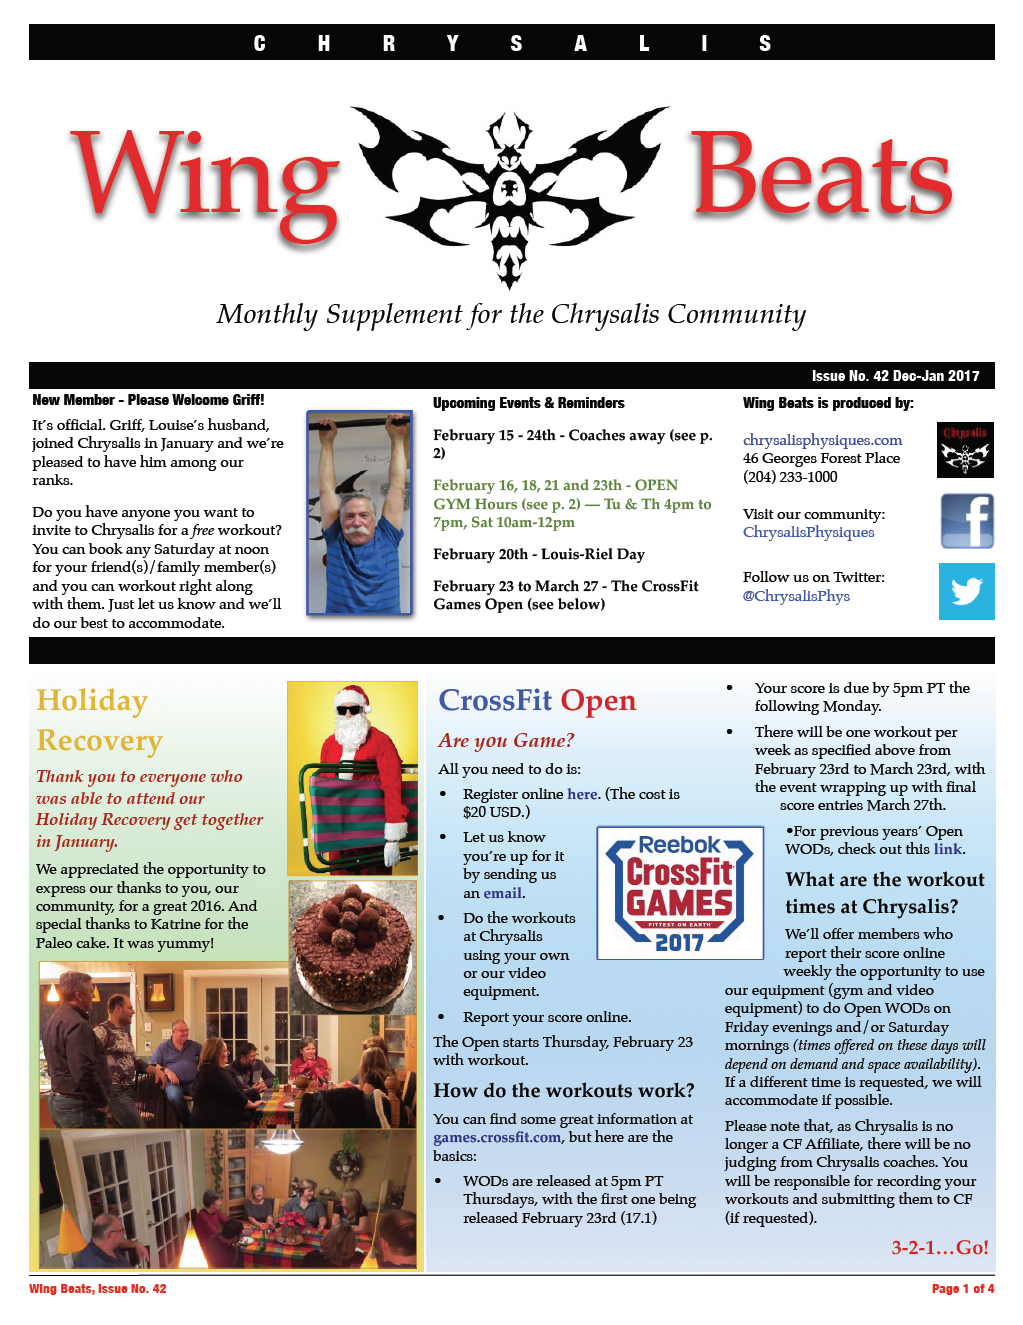 WingBeats Issue #42 - DecJan 2017